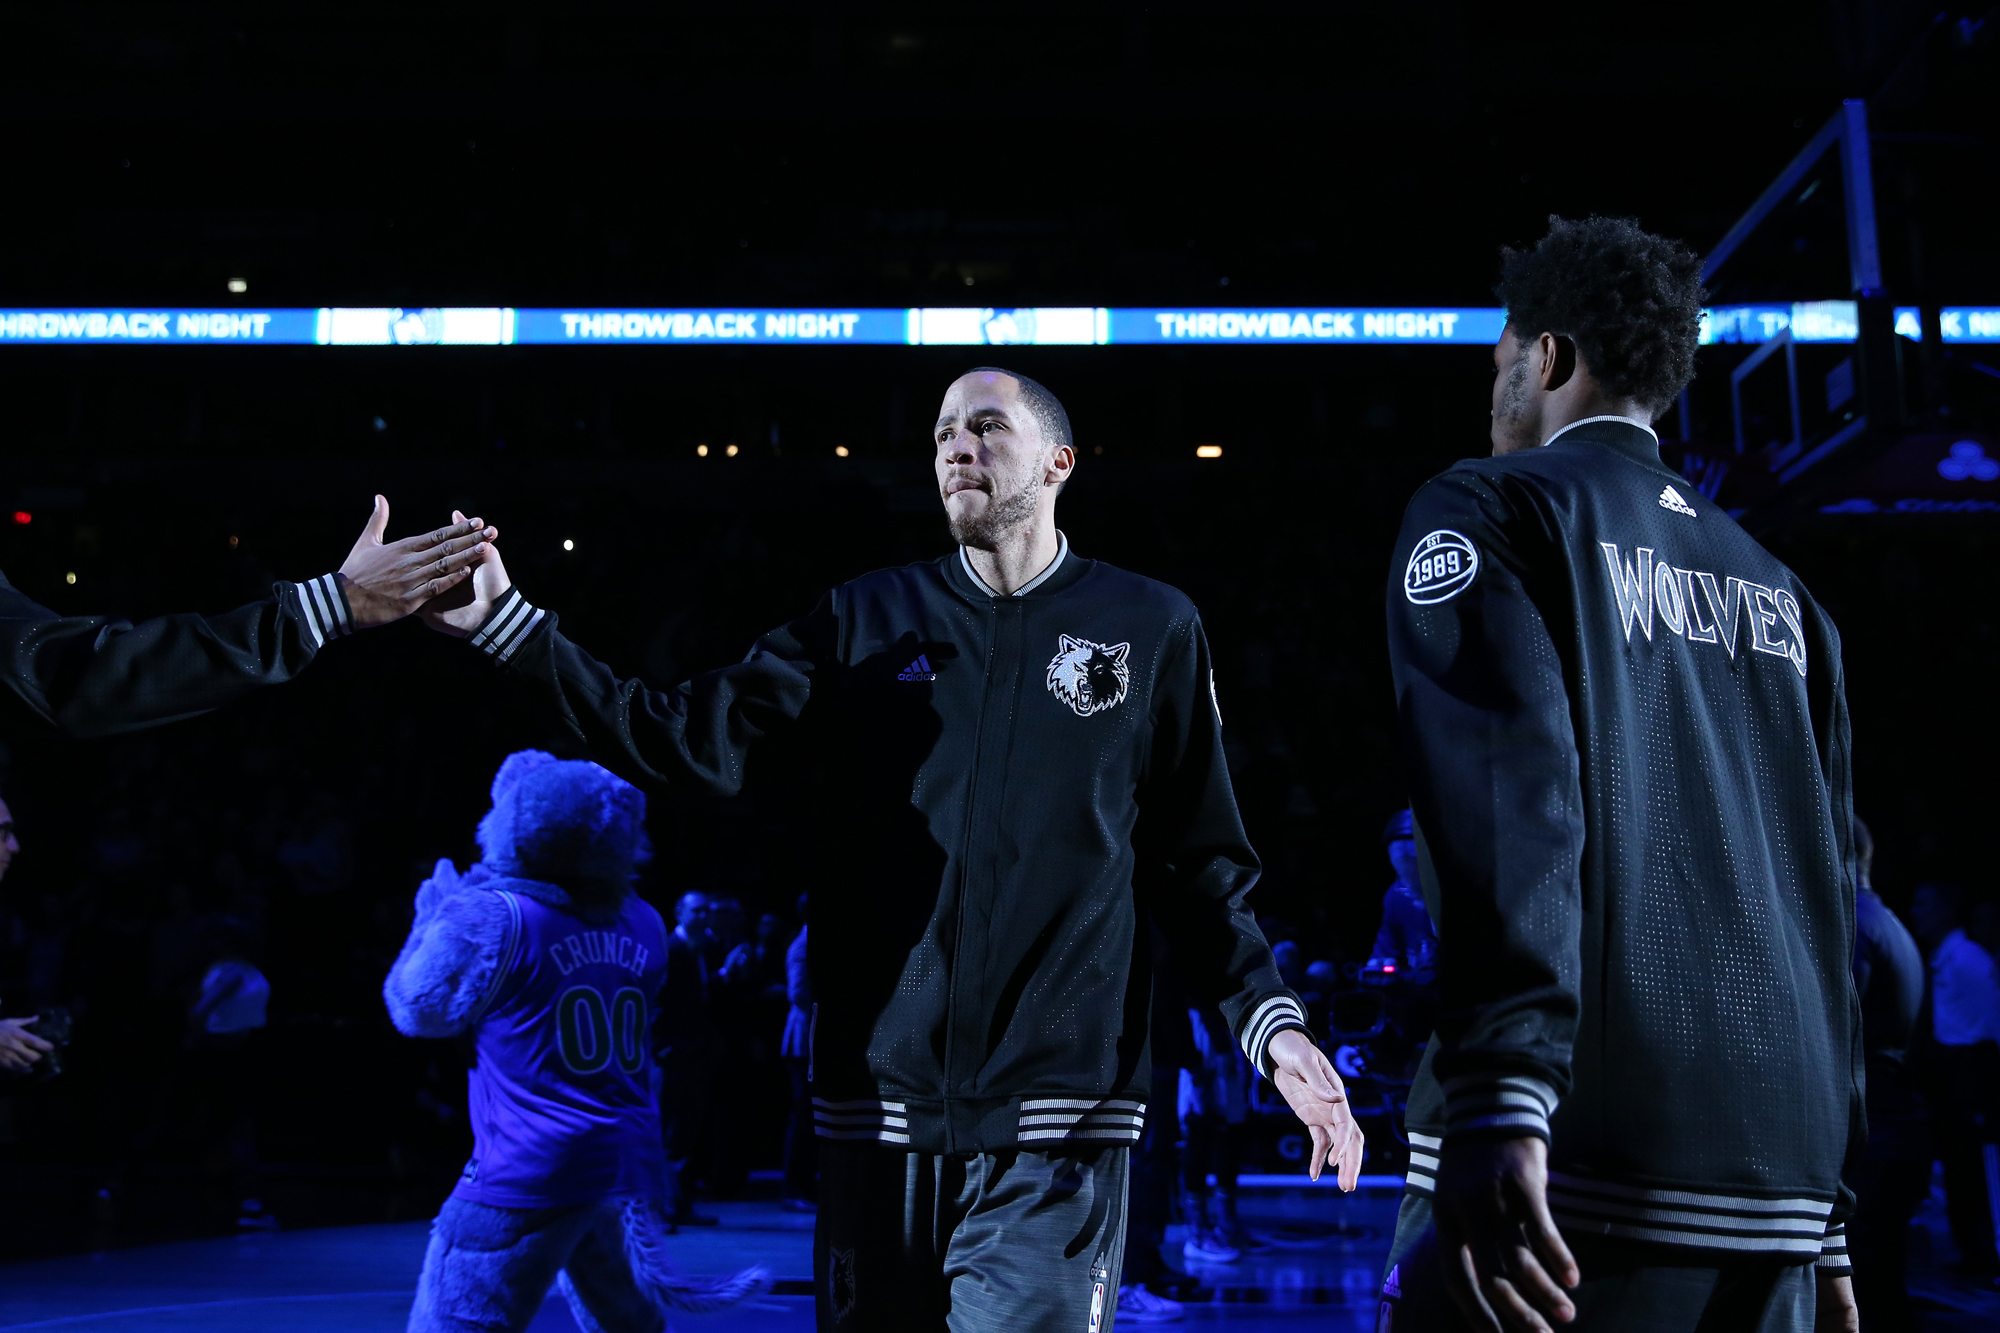 Tayshaun Prince #12 of the Minnesota Timberwolves gets introduced before the game against the Oklahoma City Thunder on January 12, 2016 at Target Center in Minneapolis, Minnesota.